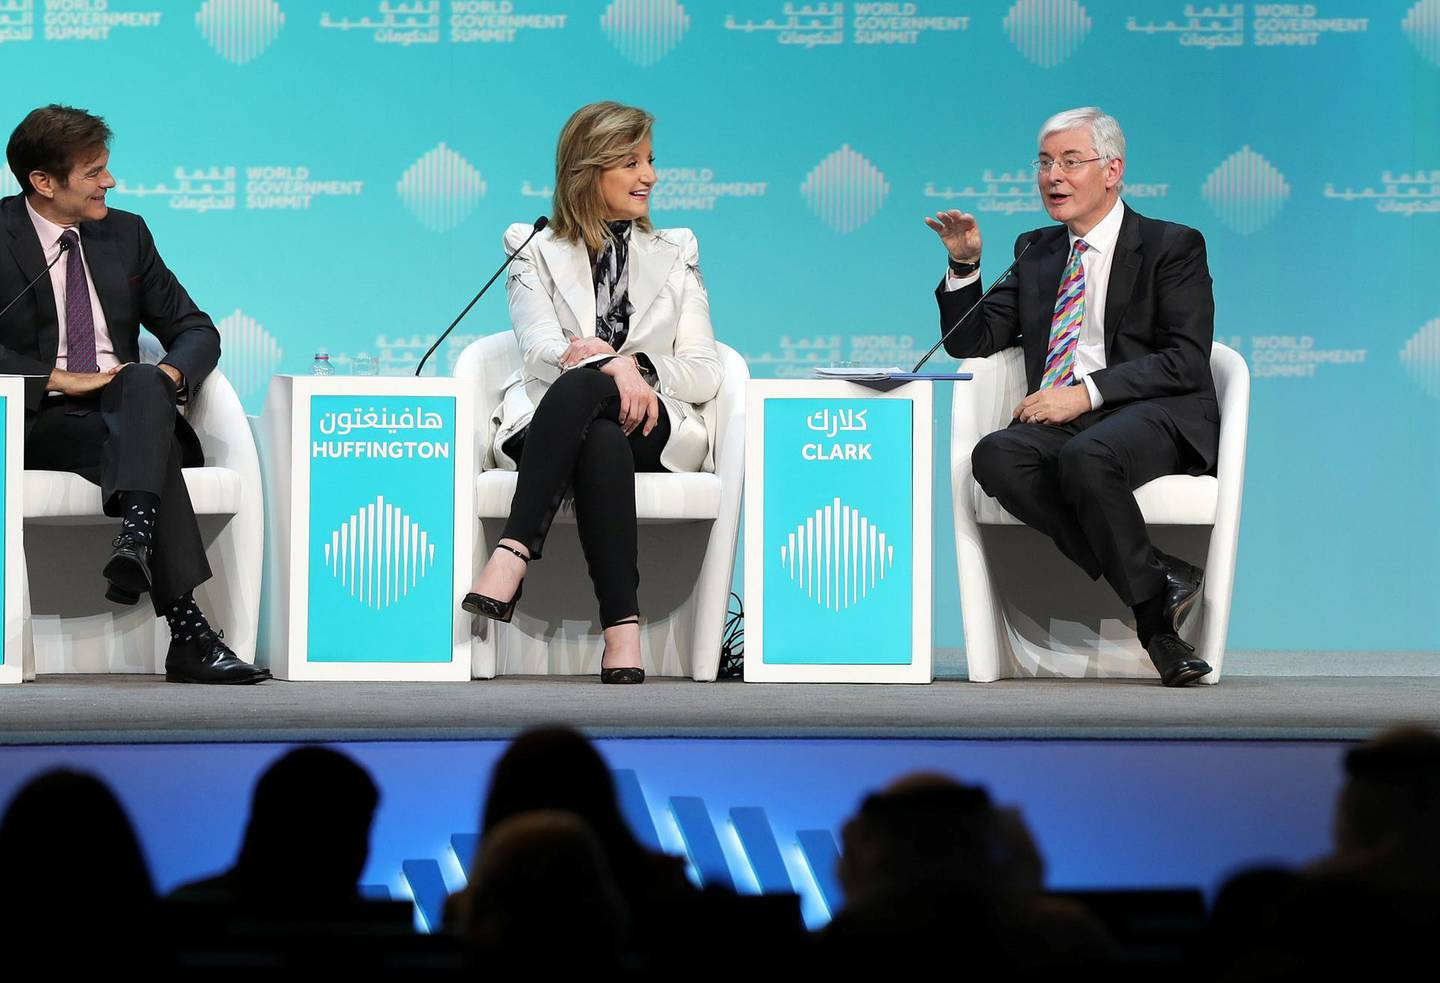 Dubai, United Arab Emirates - February 10, 2019: L-R Dr Oz, The Dr Oz show, Arianna Huffington, Founder, Thrive Global and David Clark Chair of Experimental Psychology, speak about mental health during day 1 at the World Government Summit. Sunday the 10th of February 2019 at Madinat, Dubai. Chris Whiteoak / The National